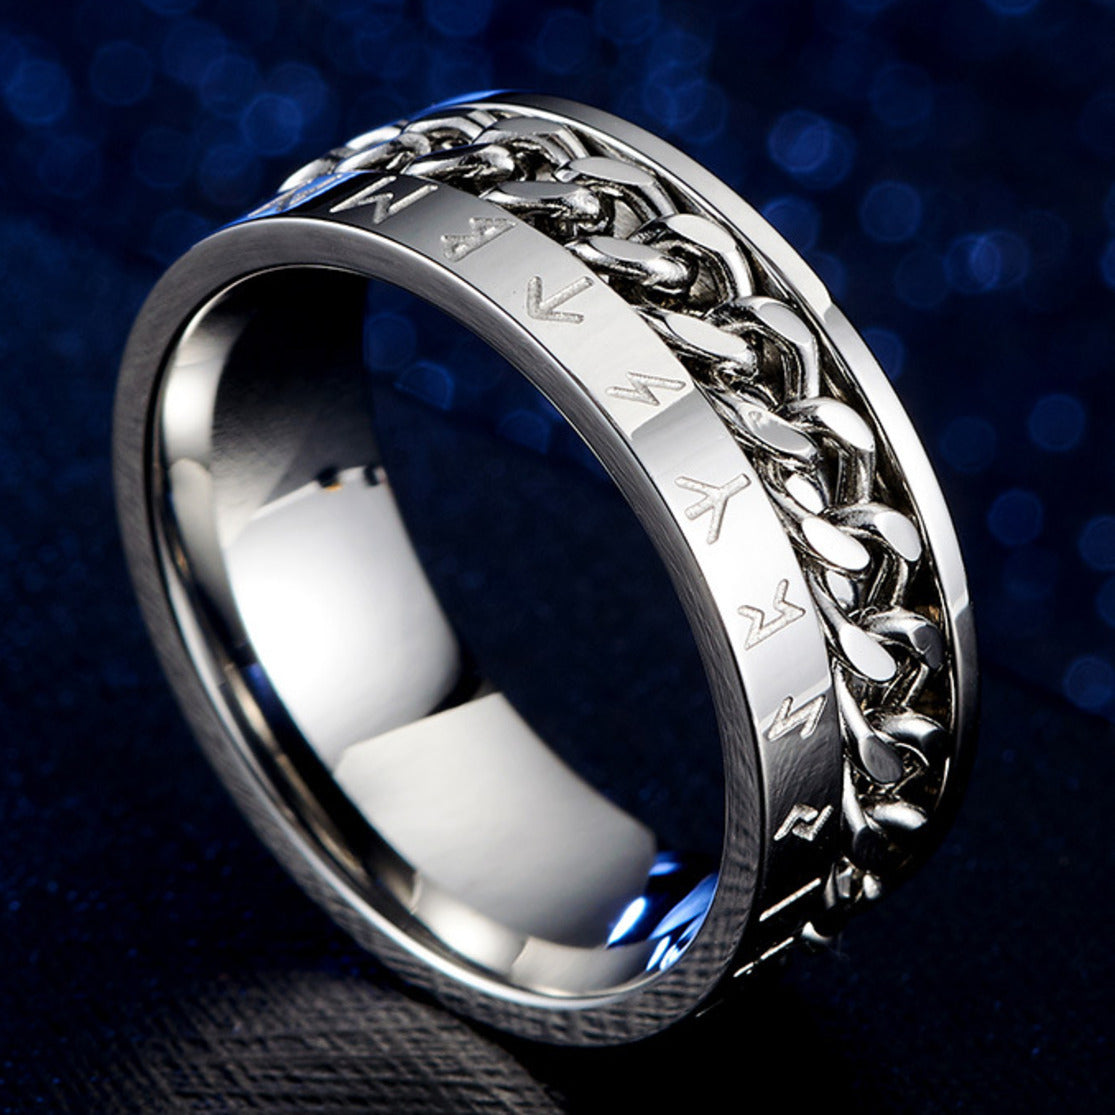 Viking Rune Ring with Rotatable Chain 316L Stainless Steel